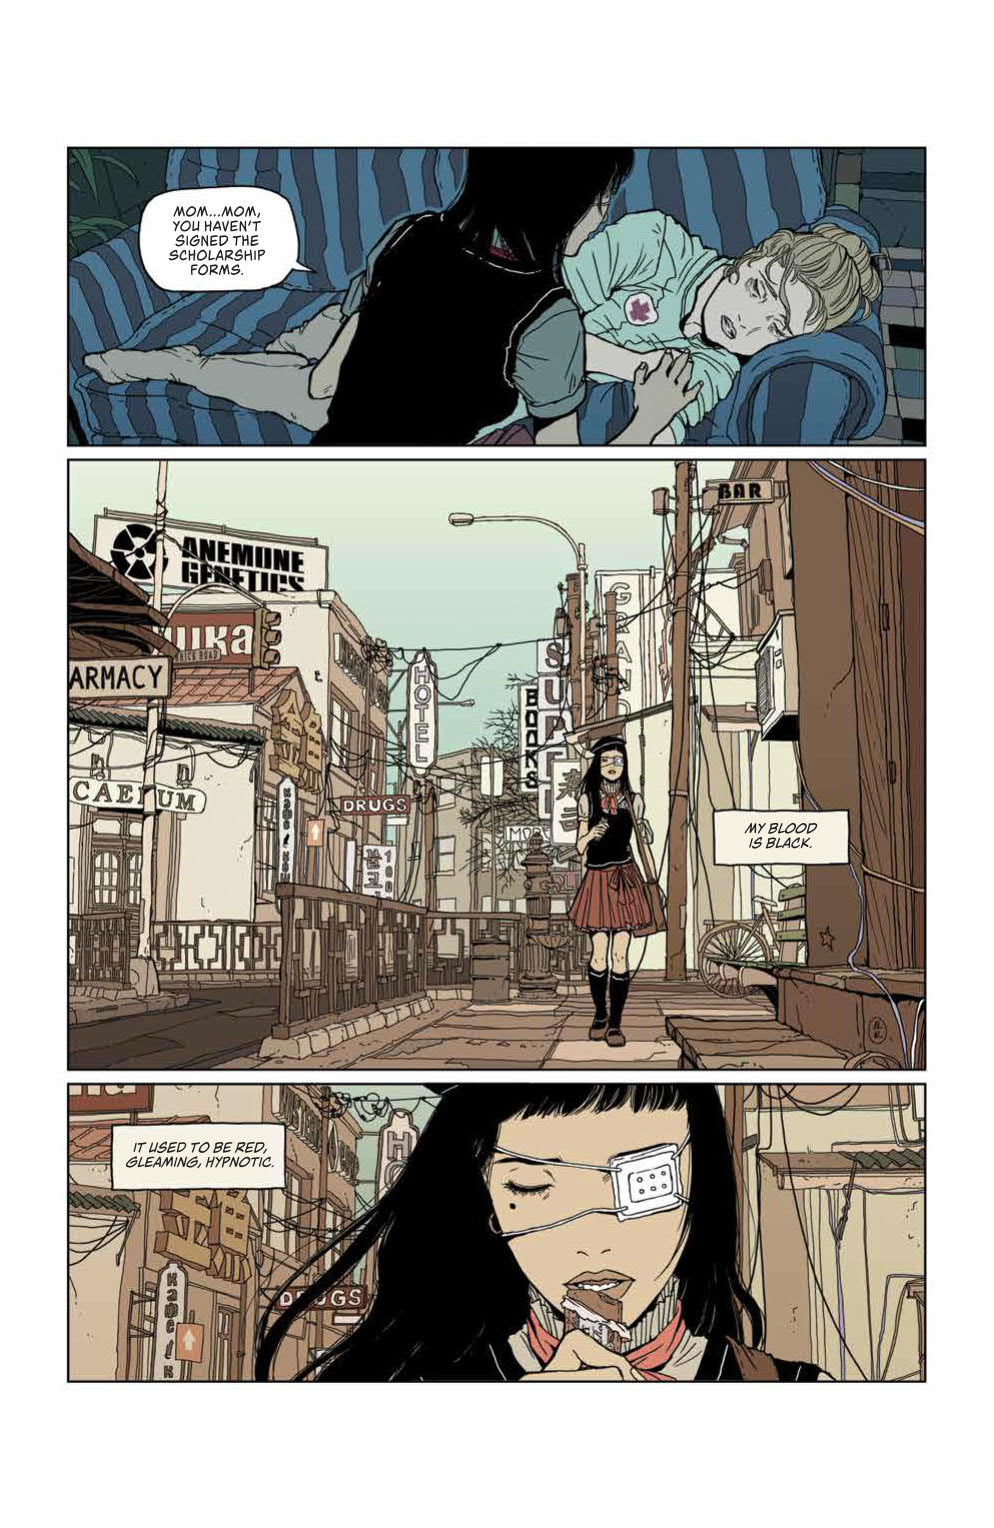 Page 5 from Heartbeat #1.